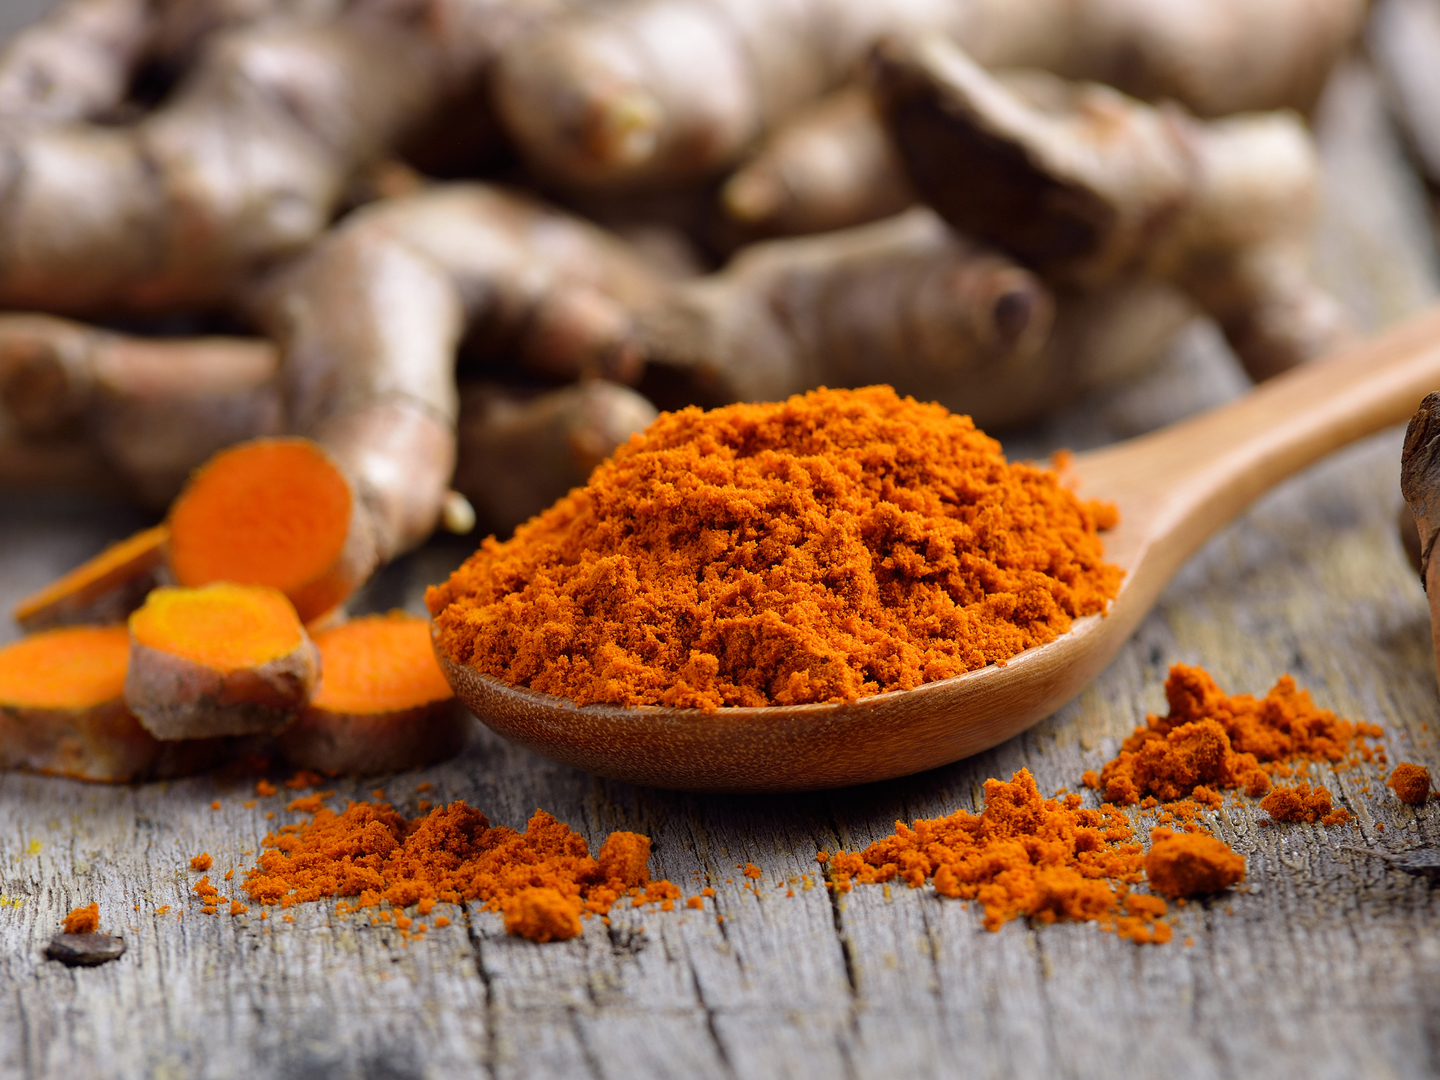 New Study says Turmeric (Curcumin) May Help Manage Diabetes